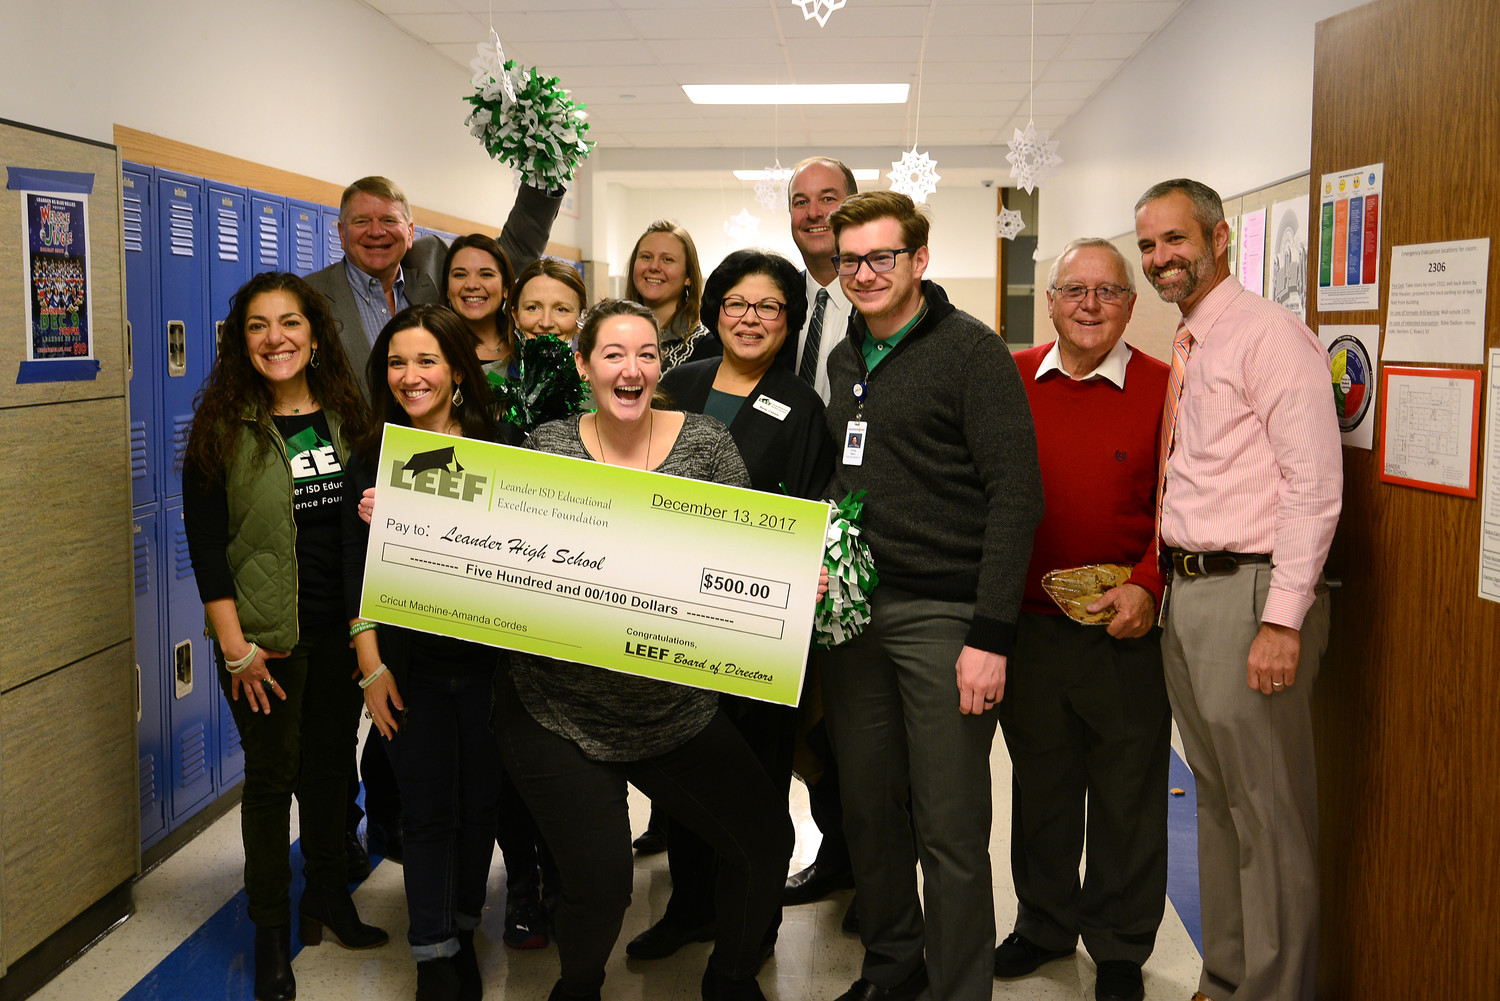 Leander High School teacher Amanda Cordes (center) stands among LISD staff with her $500 grant from the Leander Educational Excellence Foundation to buy a Cricut machine for her art and design classes, Dec. 13.